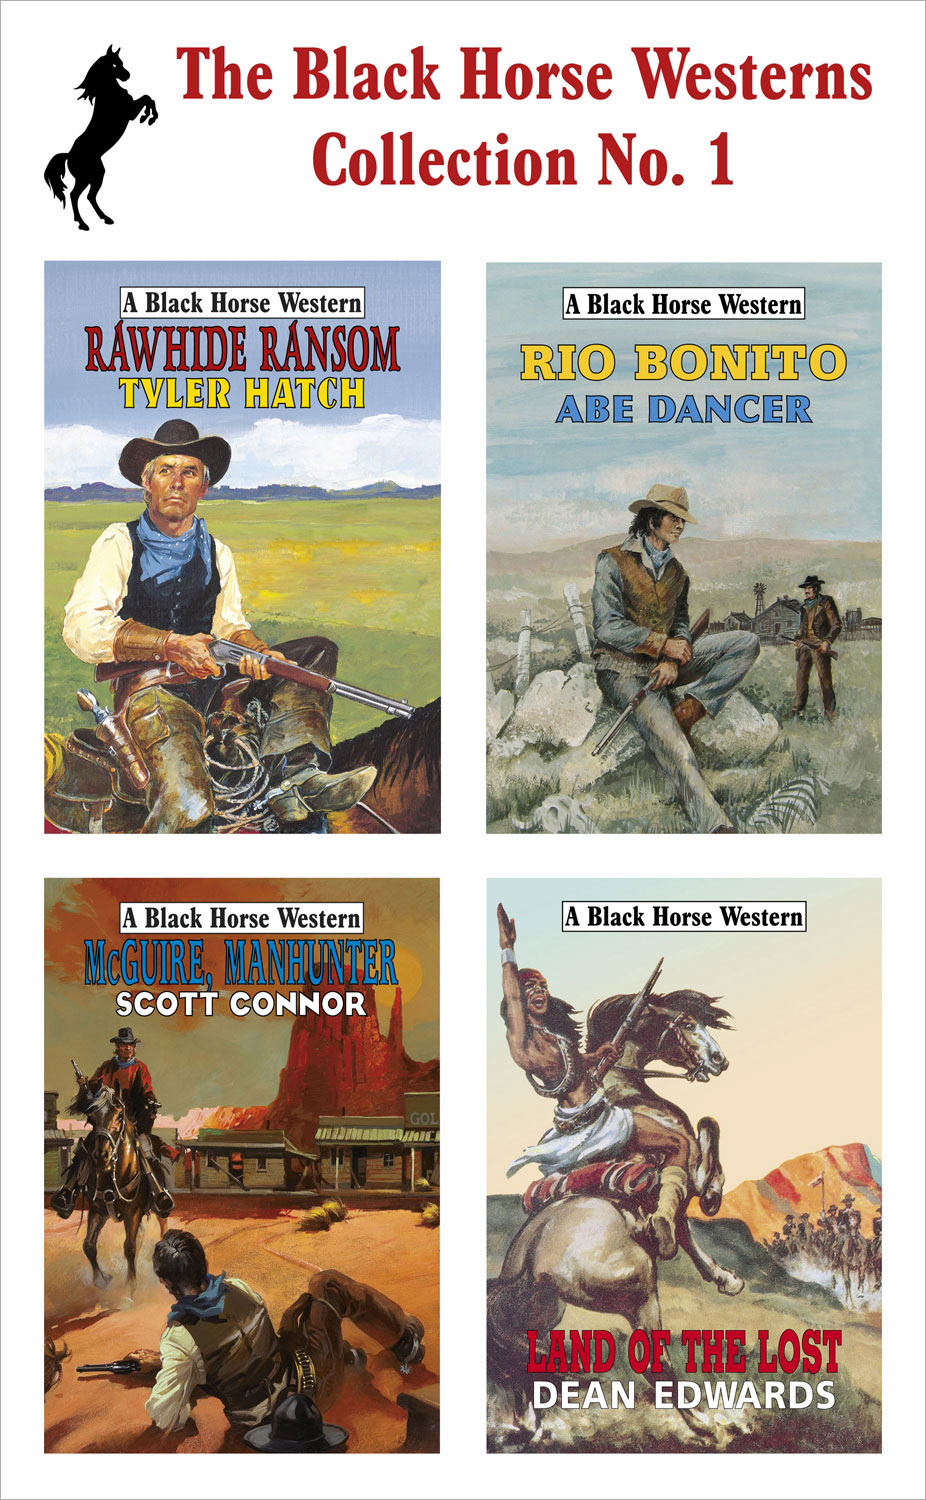 The Black Horse Westerns Collection: Land of the Lost, Rawhide Ransom, McGuire, Manhunter and Rio Bonito